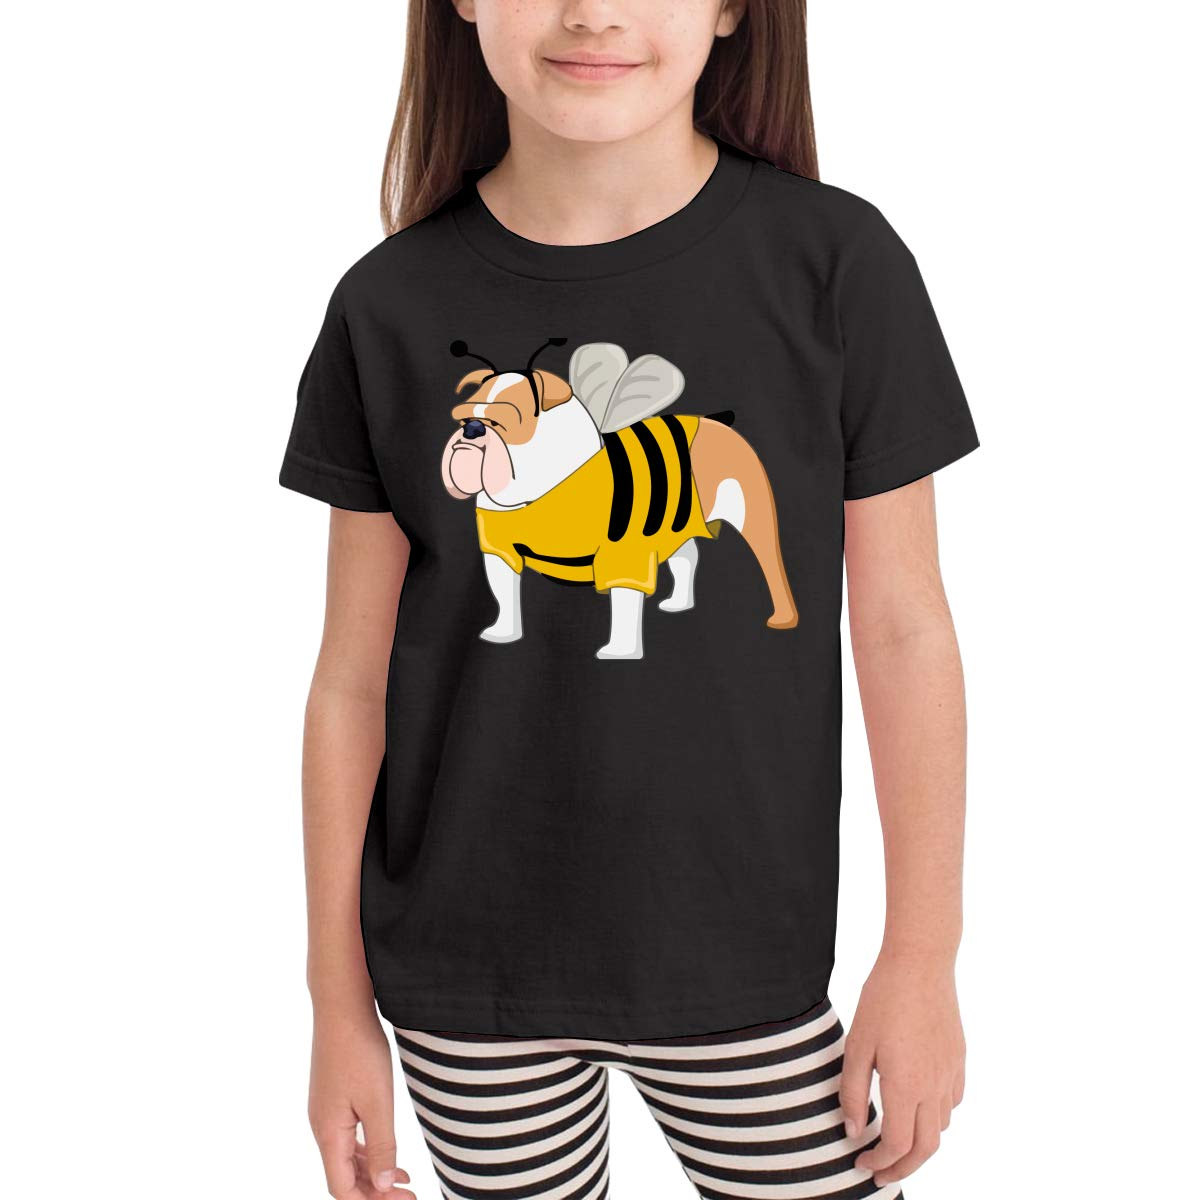 Bee Bulldog Kids Cotton T-Shirt Basic Soft Short Sleeve Tee Tops for Baby Boys Girls